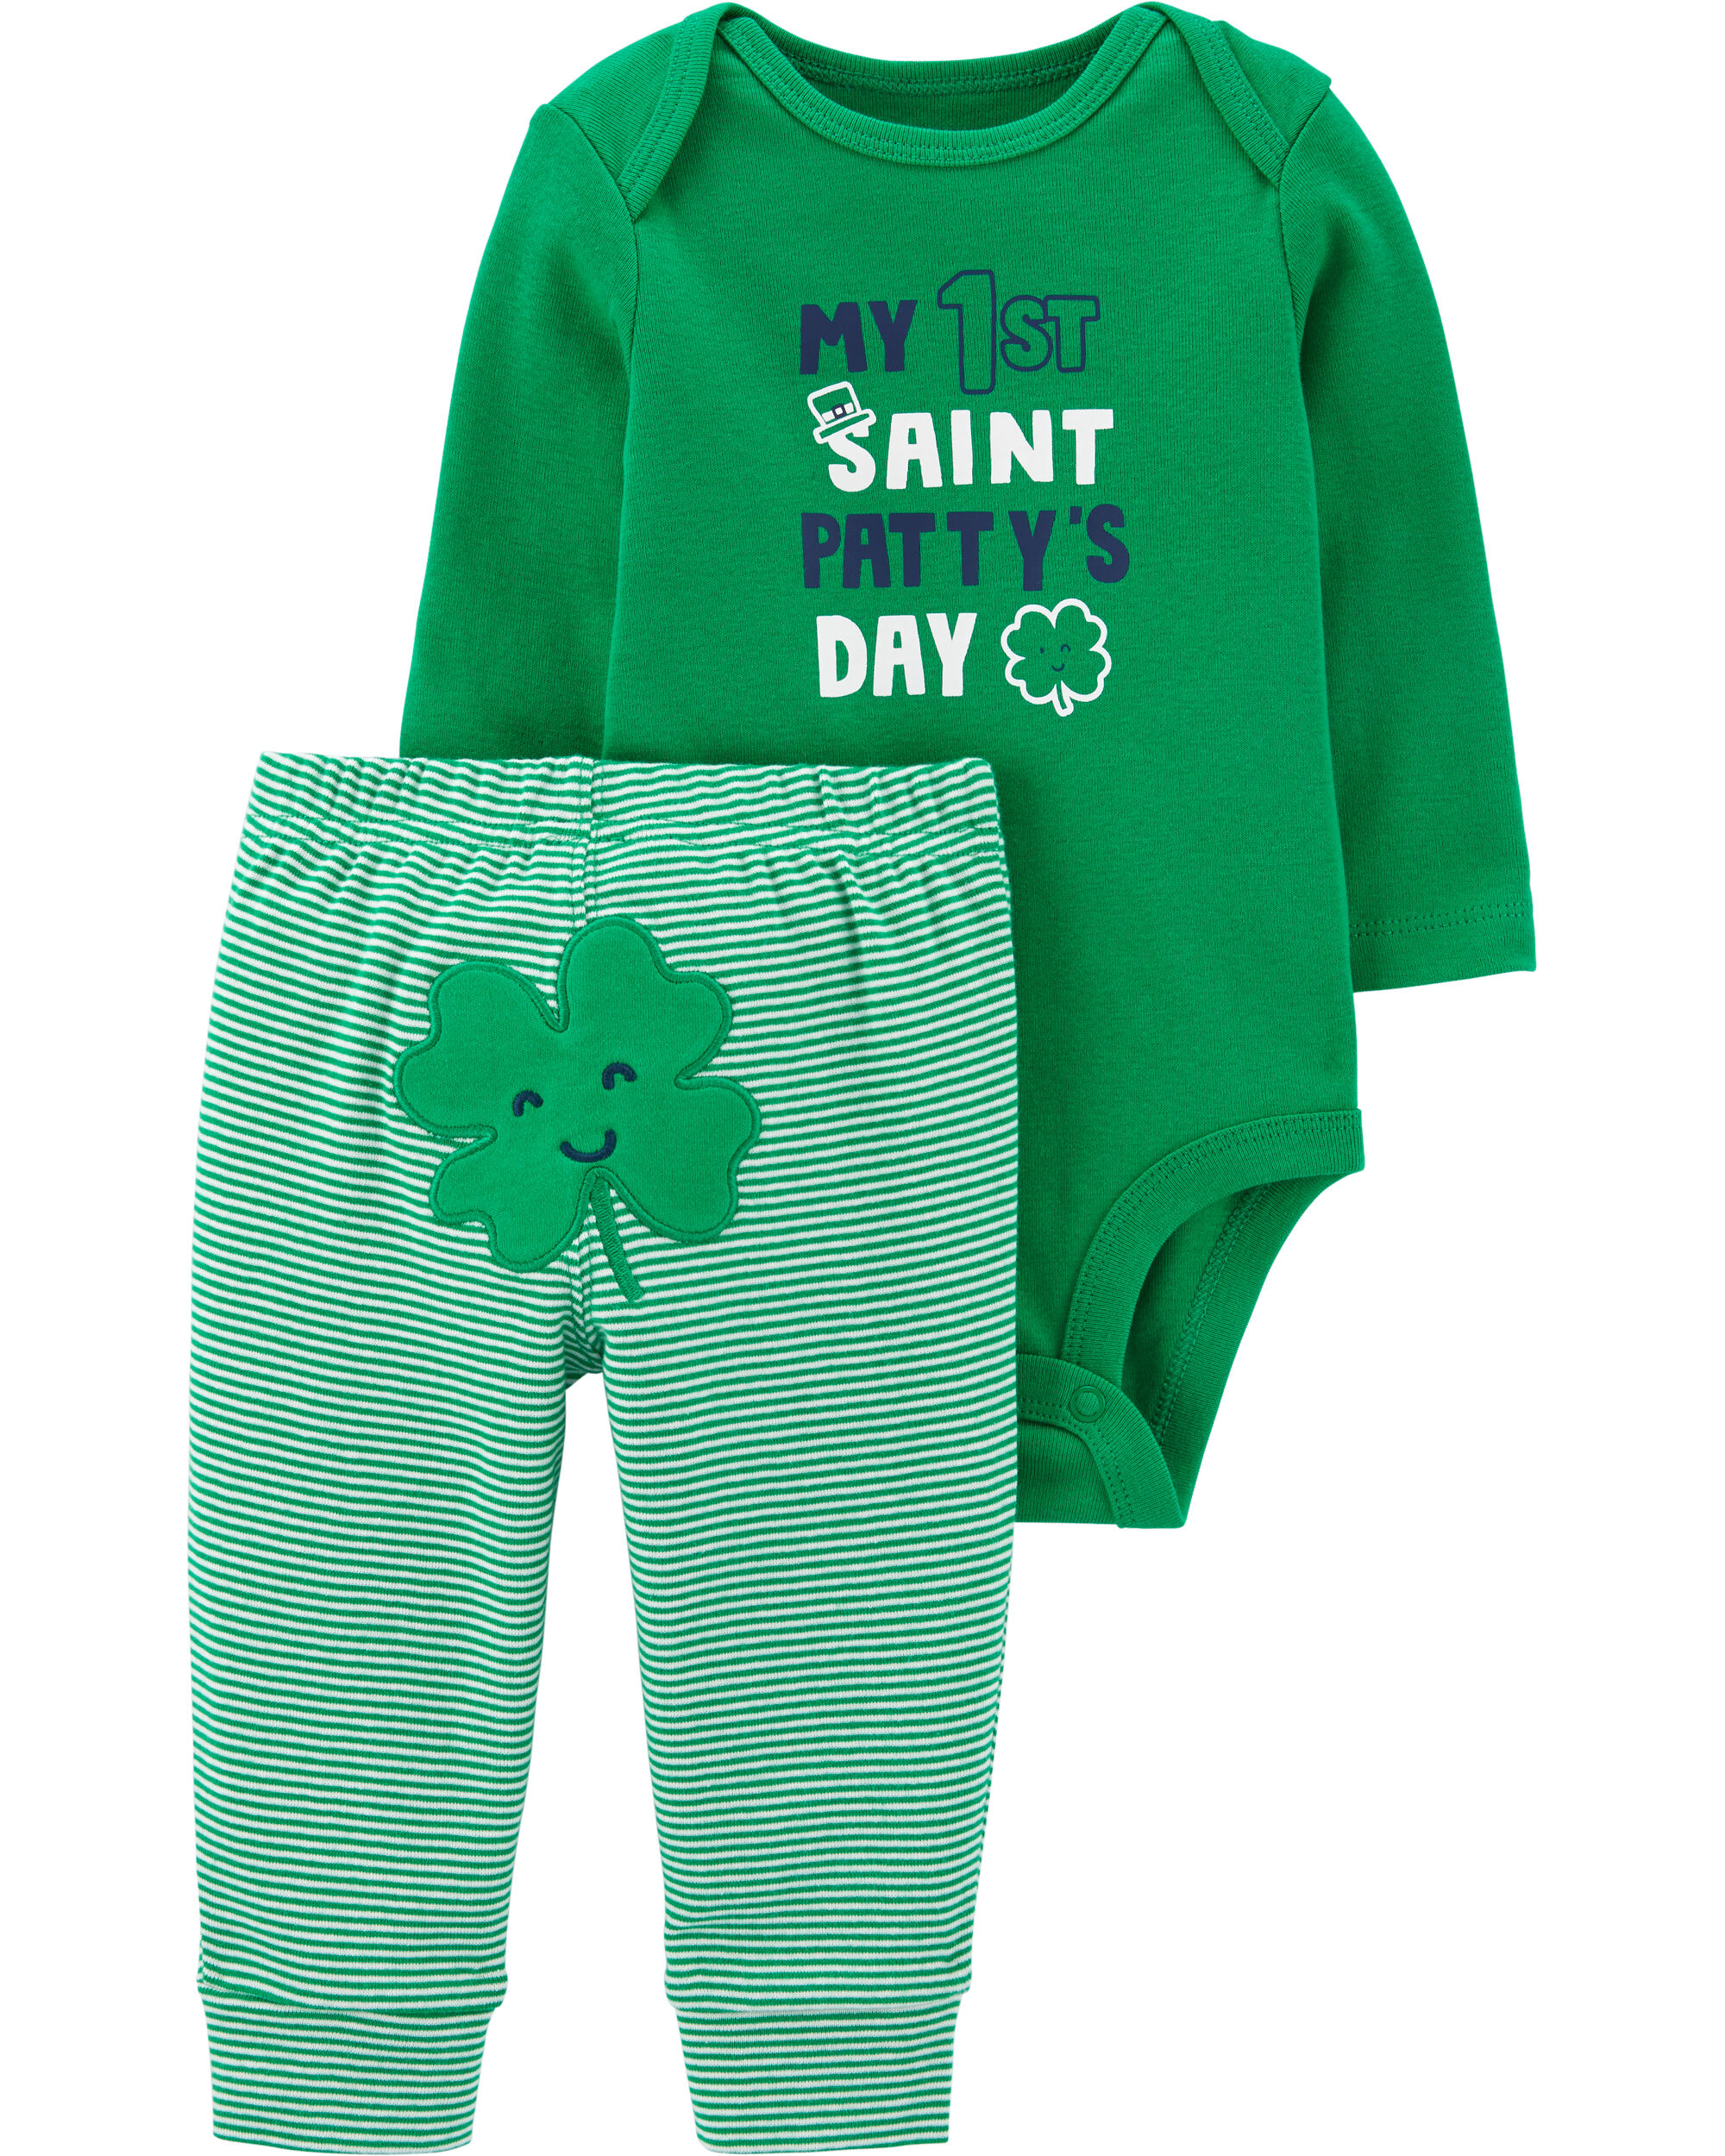 Carters St Patricks Day Dress with Shamrock for Baby Girls